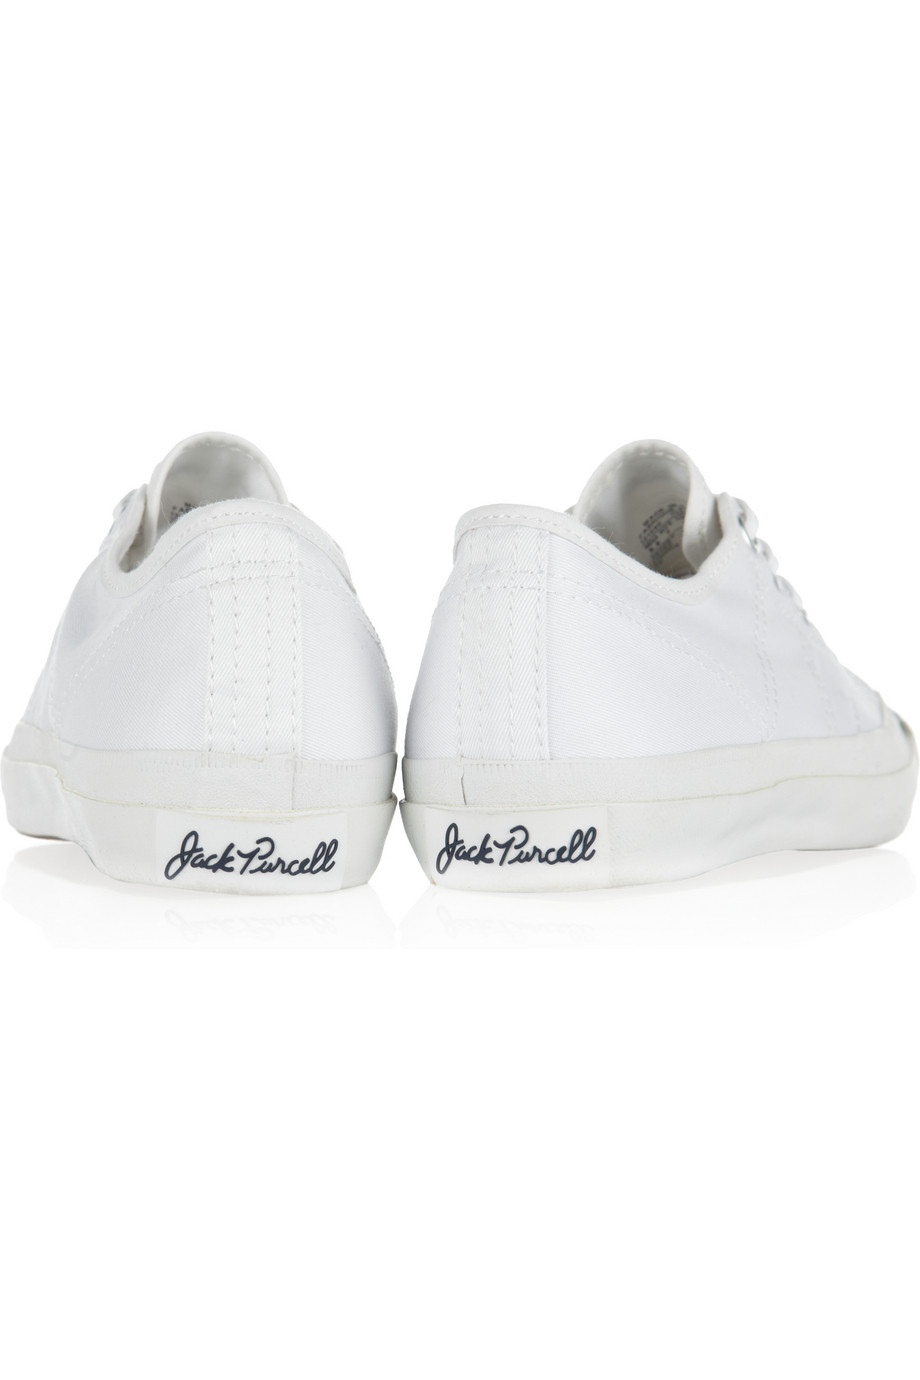 Lyst - Converse Jack Purcell Helen Canvas Sneakers in White 8ee79043b